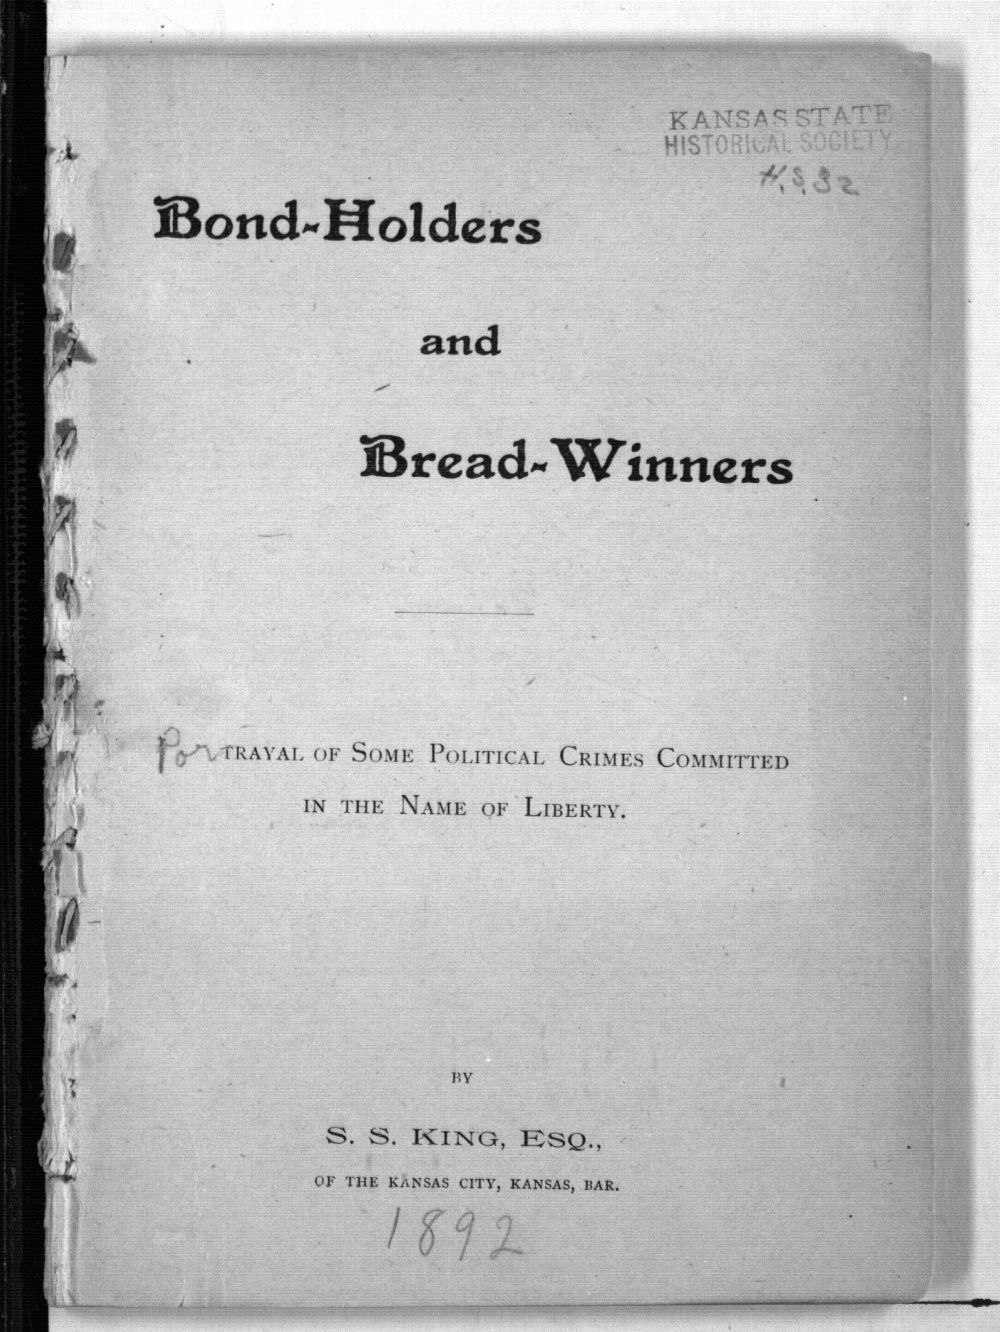 Bond-holders and bread-winners: portrayal of some political crimes committed in the name of liberty - Title Page